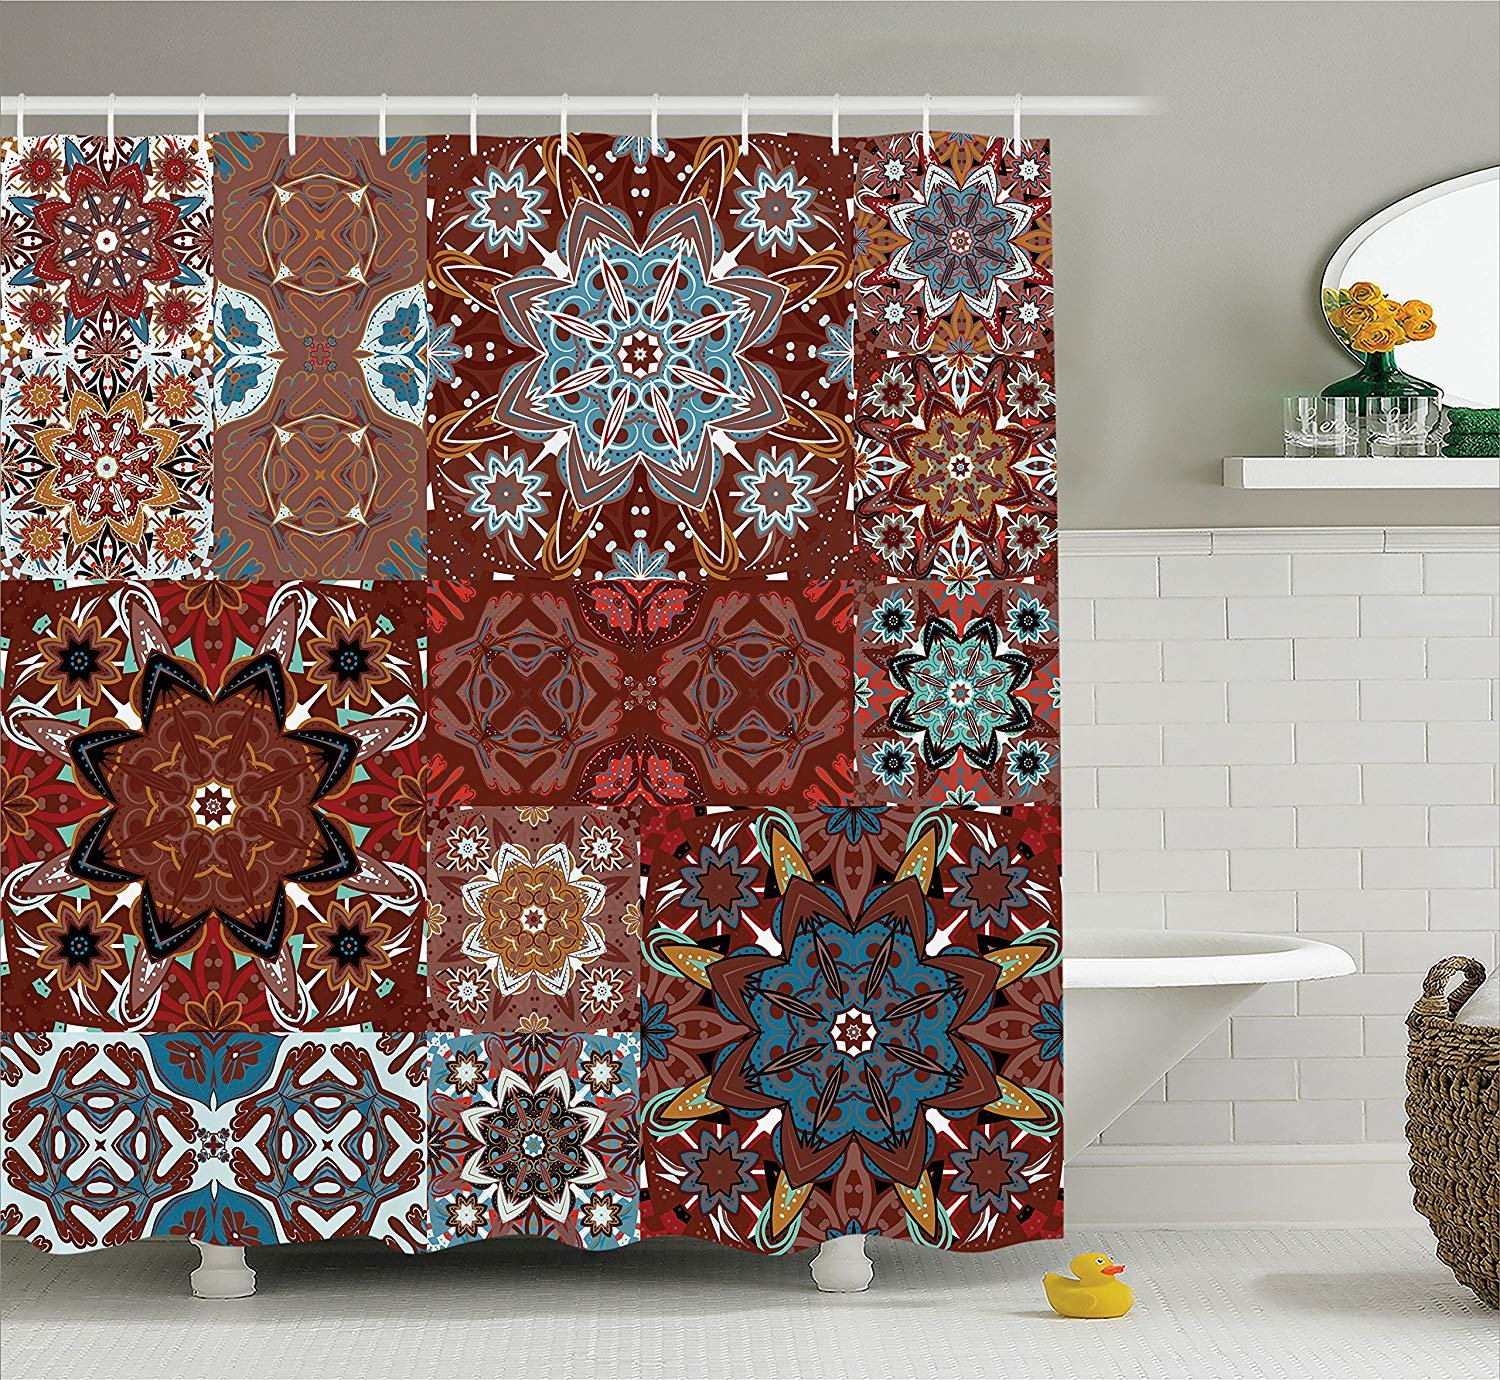 Custom Made Victorian Shower Curtain, Classic Victorian Floral Authentic Motives and Ethnic Tribal Mandala Pattern, Fabric Polyester Waterproof 12 Stainless Steel Hook, 60 x 72 Inches Burgundy Brown